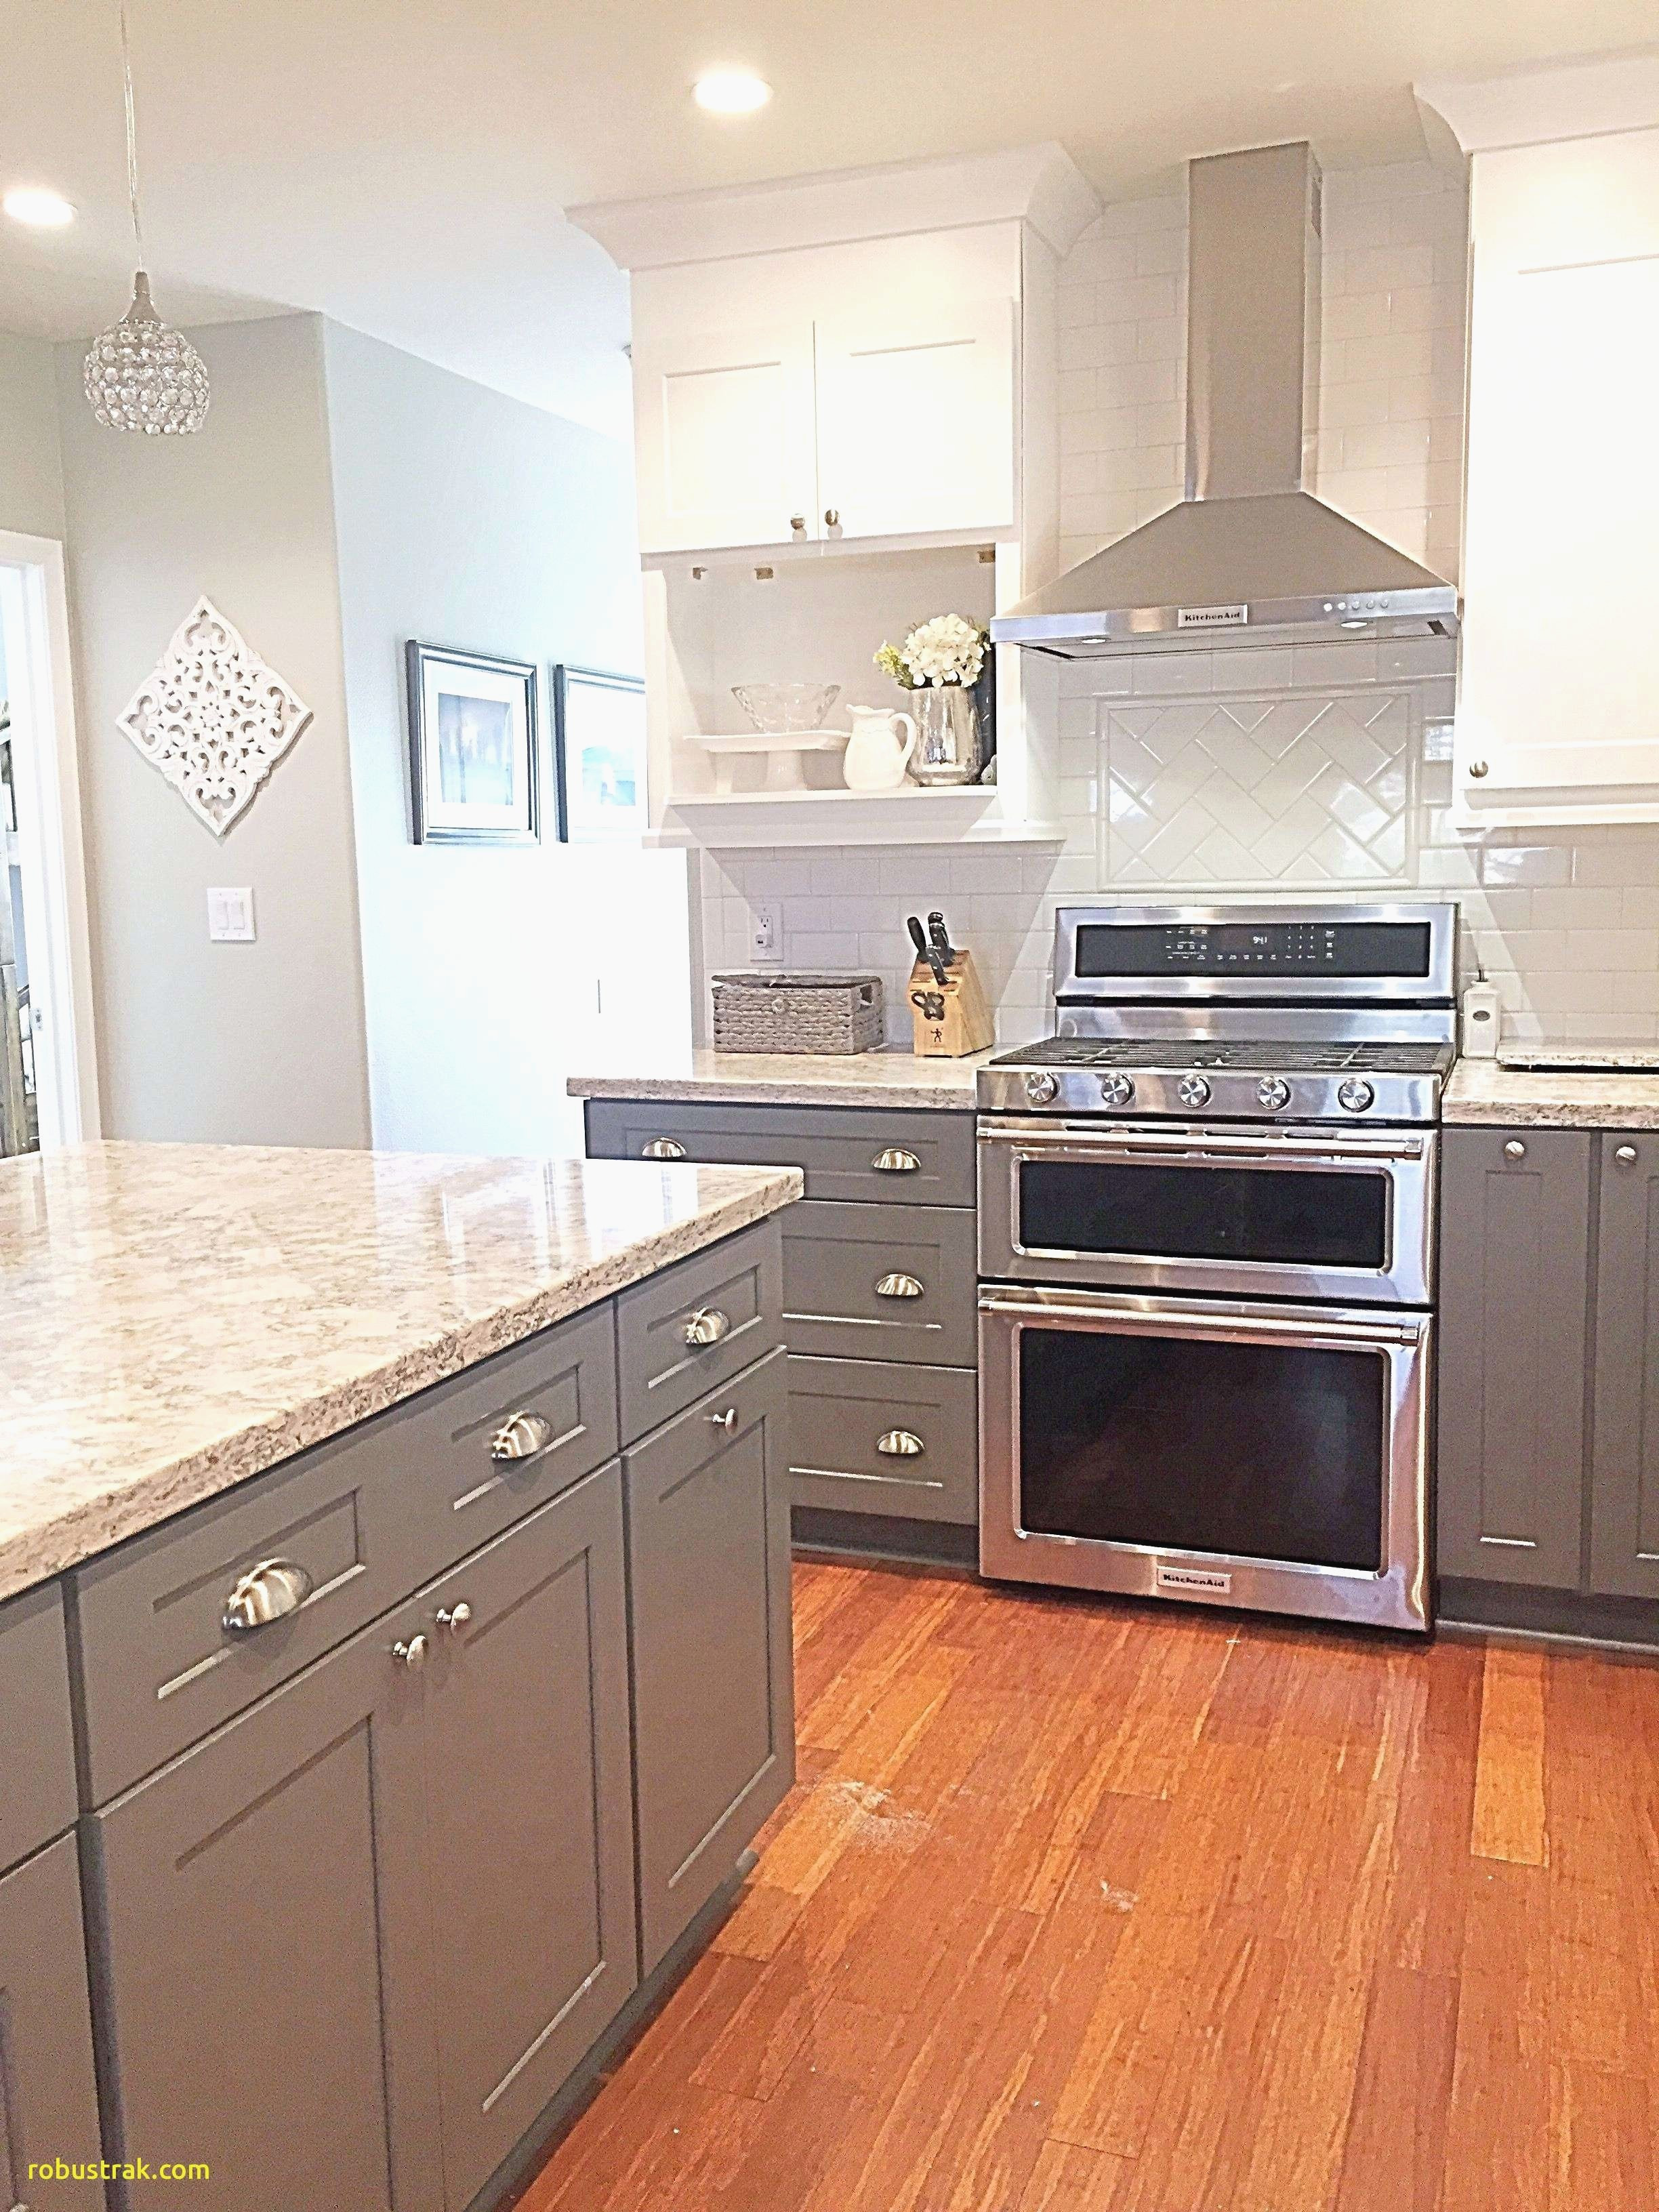 is bruce hardwood flooring any good of 18 inspirational hardwood flooring stock dizpos com within hardwood flooring awesome the most kitchen cabinet wood colors stock home ideas pictures